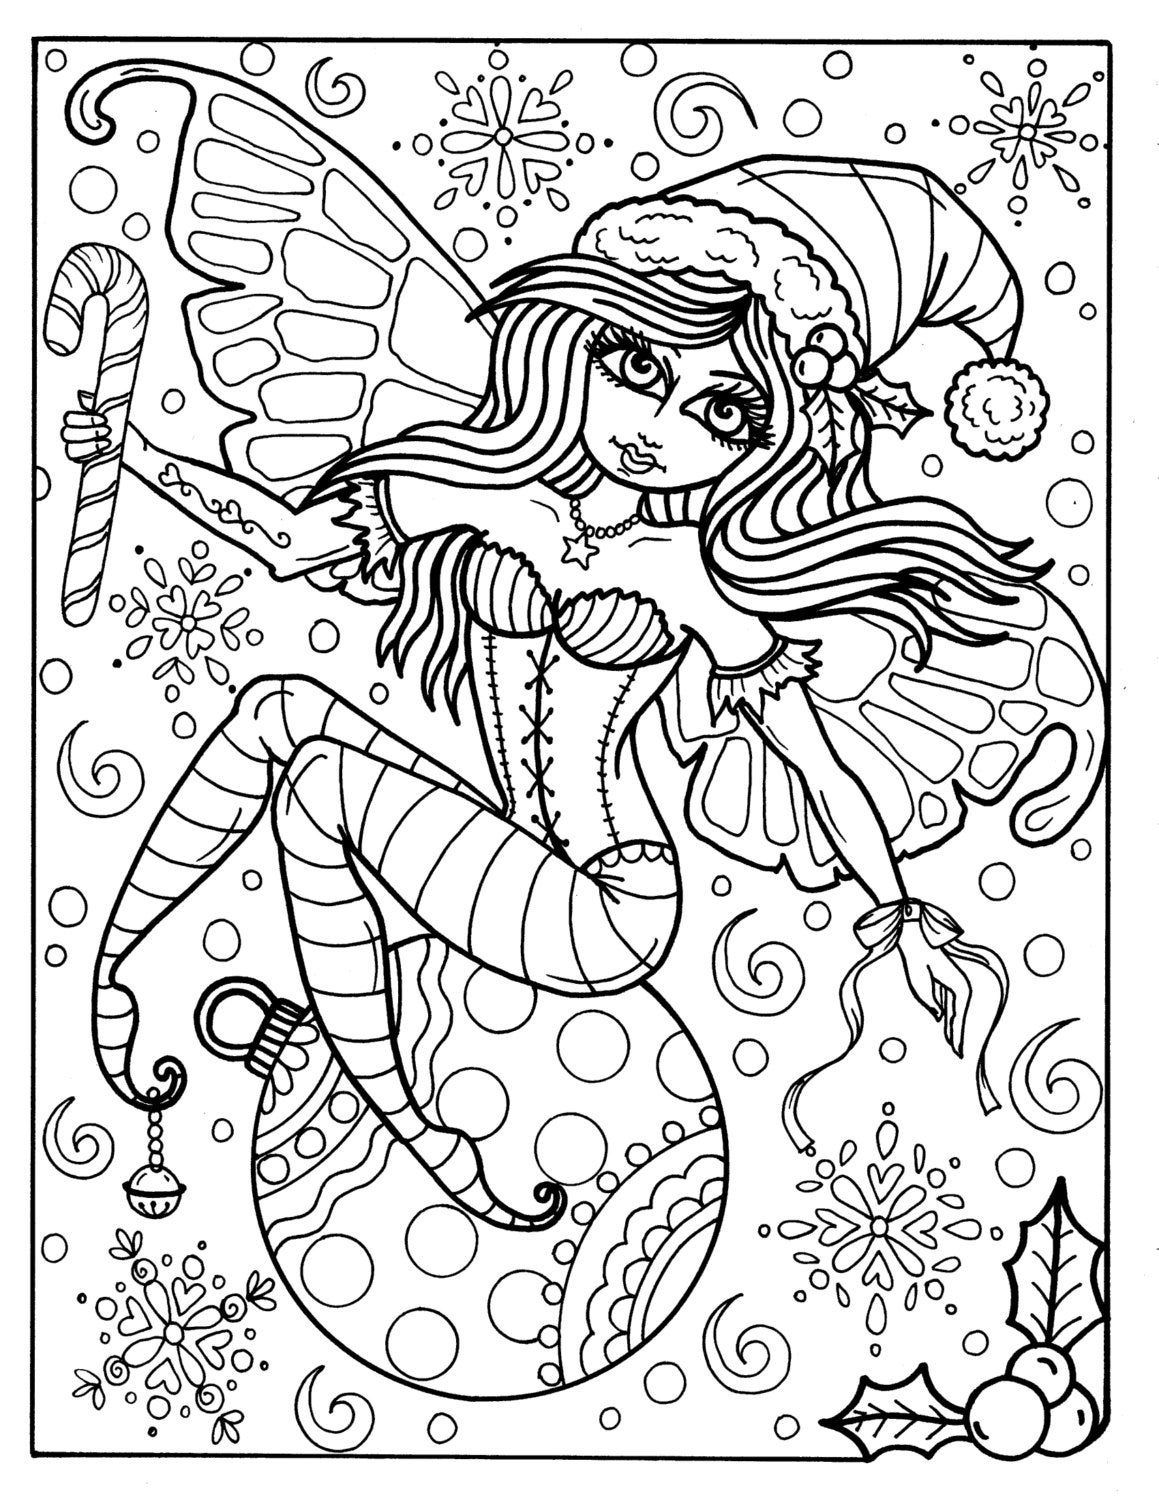 Fairy Christmas Elf Digital Instant Download Adult coloring